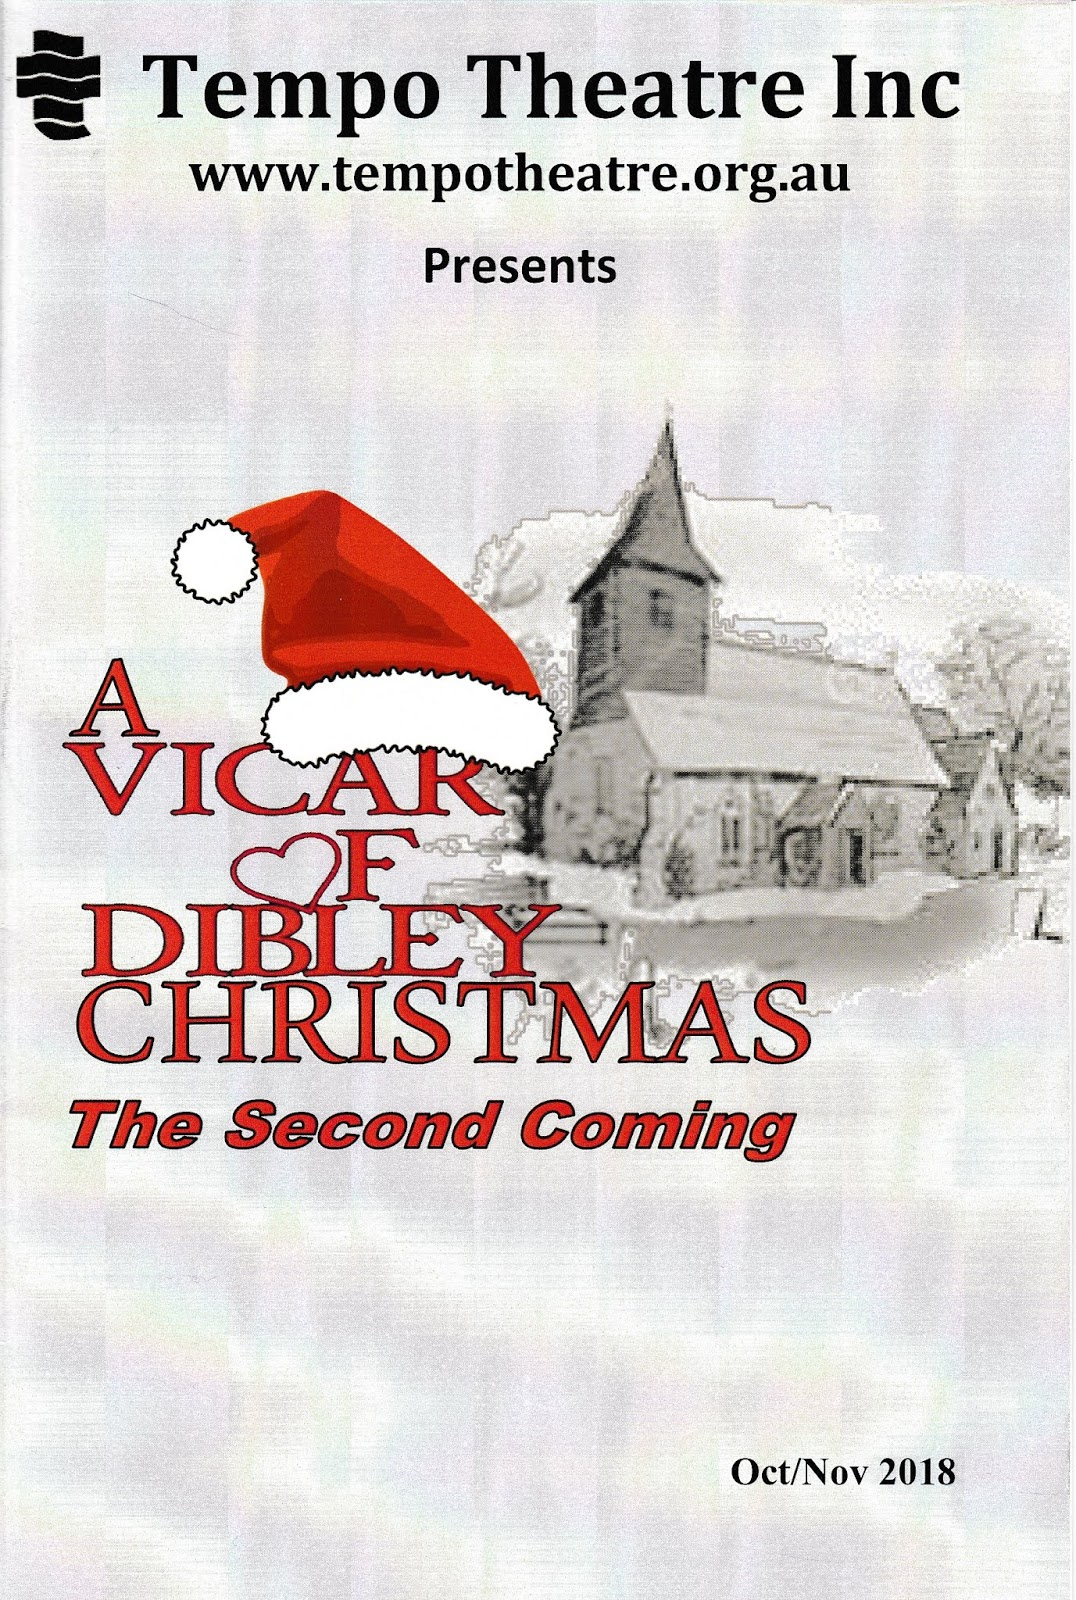 Canberra Critics Circle: A VICAR OF DIBLEY CHRISTMAS - THE SECOND COMING